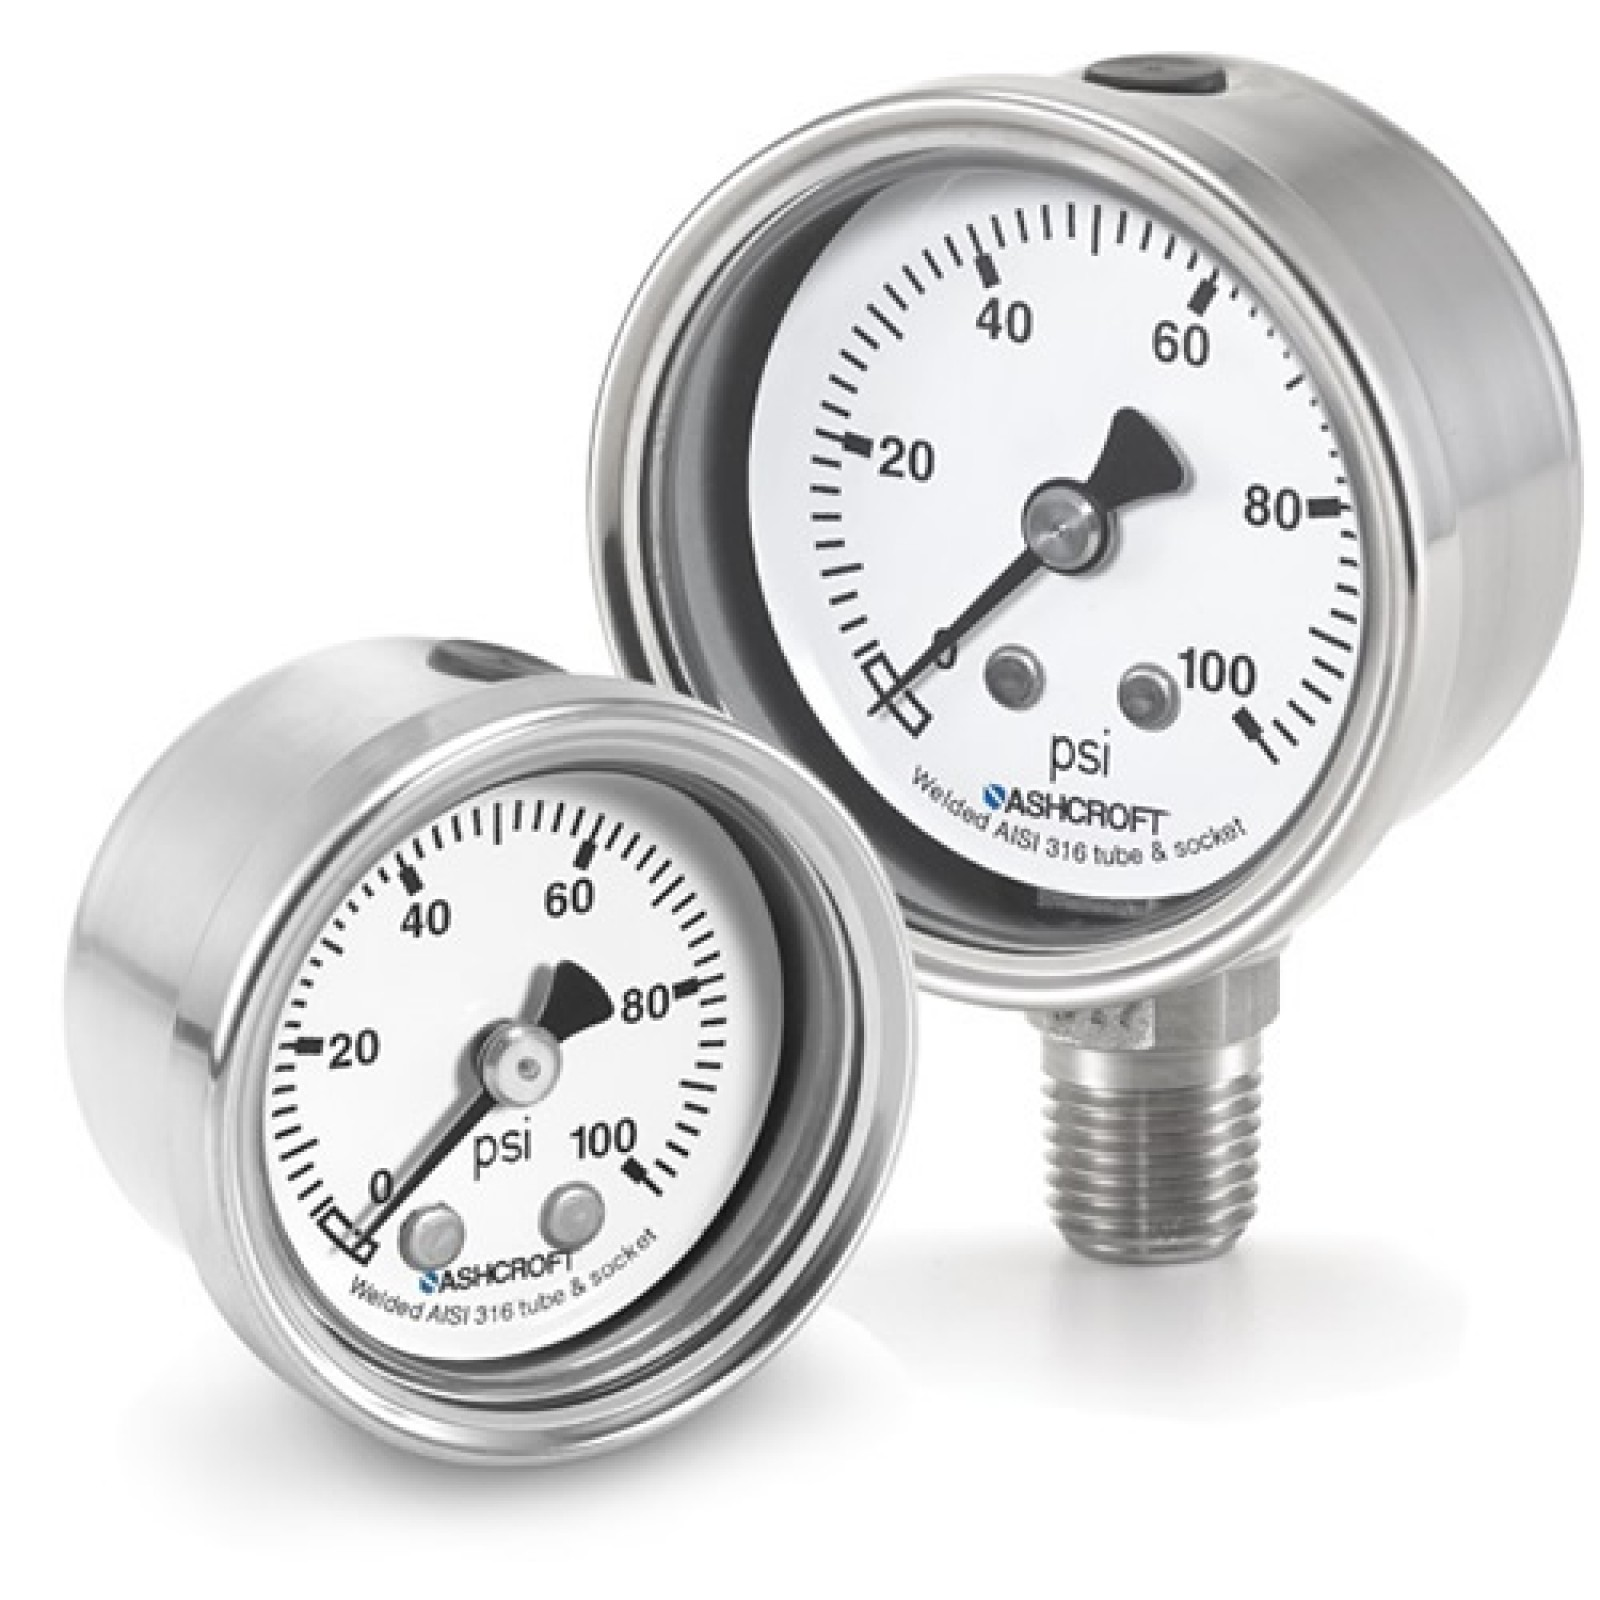 "63 1008S 02B XLL 15000#/KP - Pressure Gauge, 63mm stainless 1/4"" NPT Back conn & Case, Plus Performance, 0/15,000 psi"